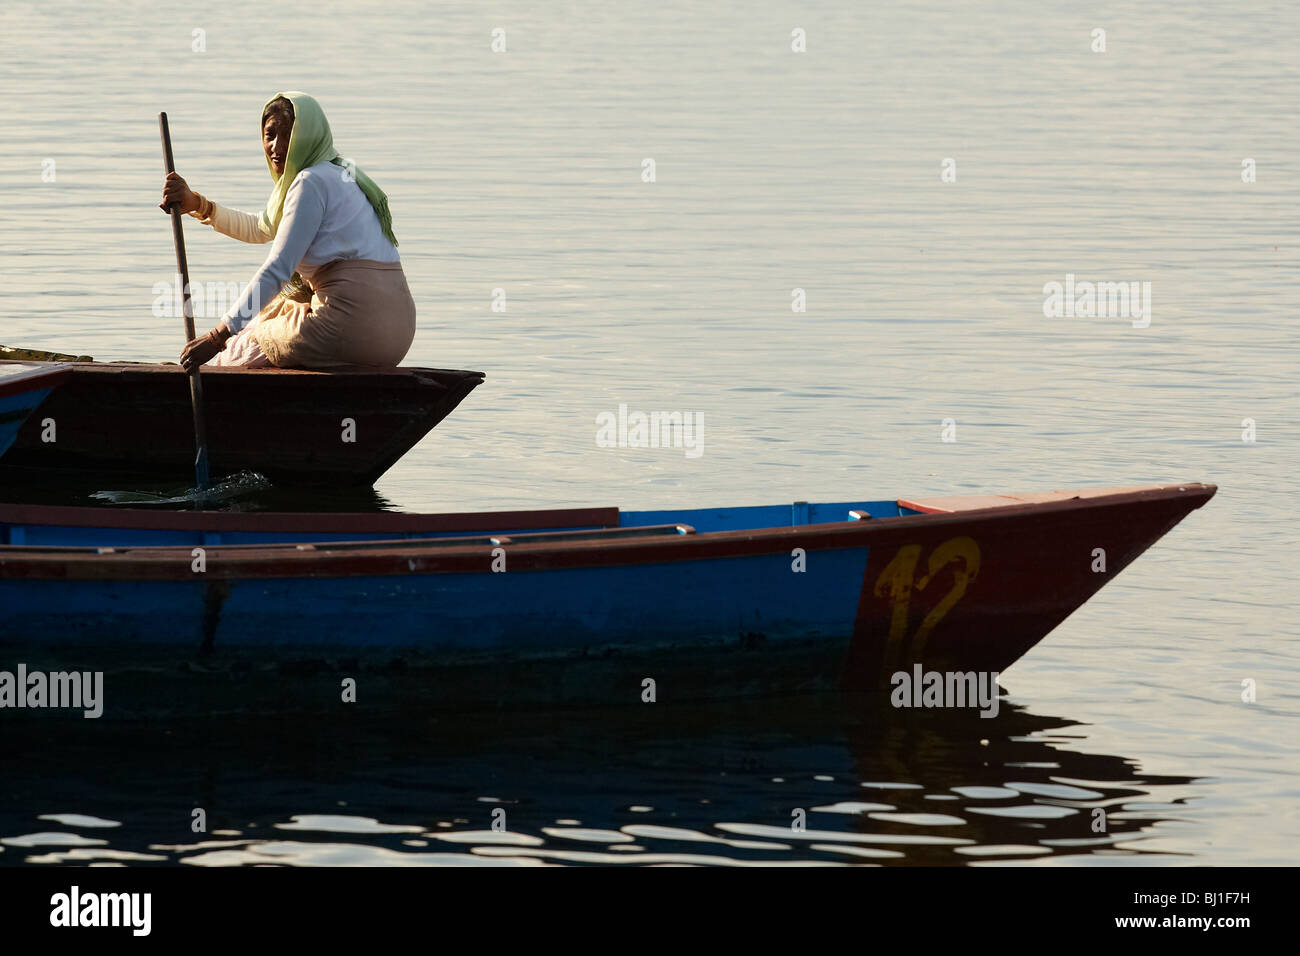 Woman sitting in a canoe on Pewha Lake in Pokhara, Nepal on Monday October 26, 2009. - Stock Image